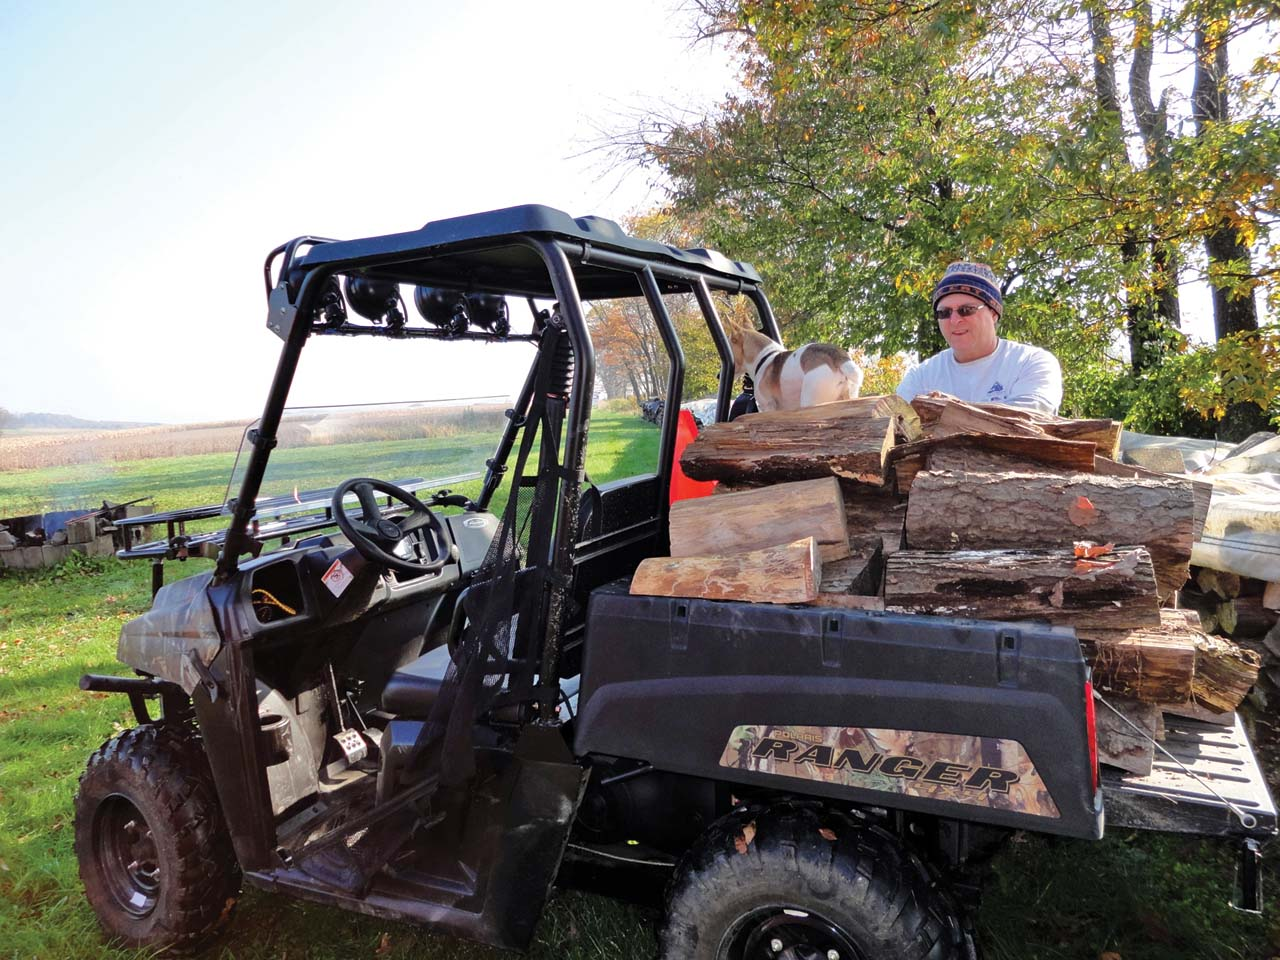 We loaded the ranger 500 with all the wood we could stack on it and it had no problem carrying more than the load it was rated for it makes rick happy